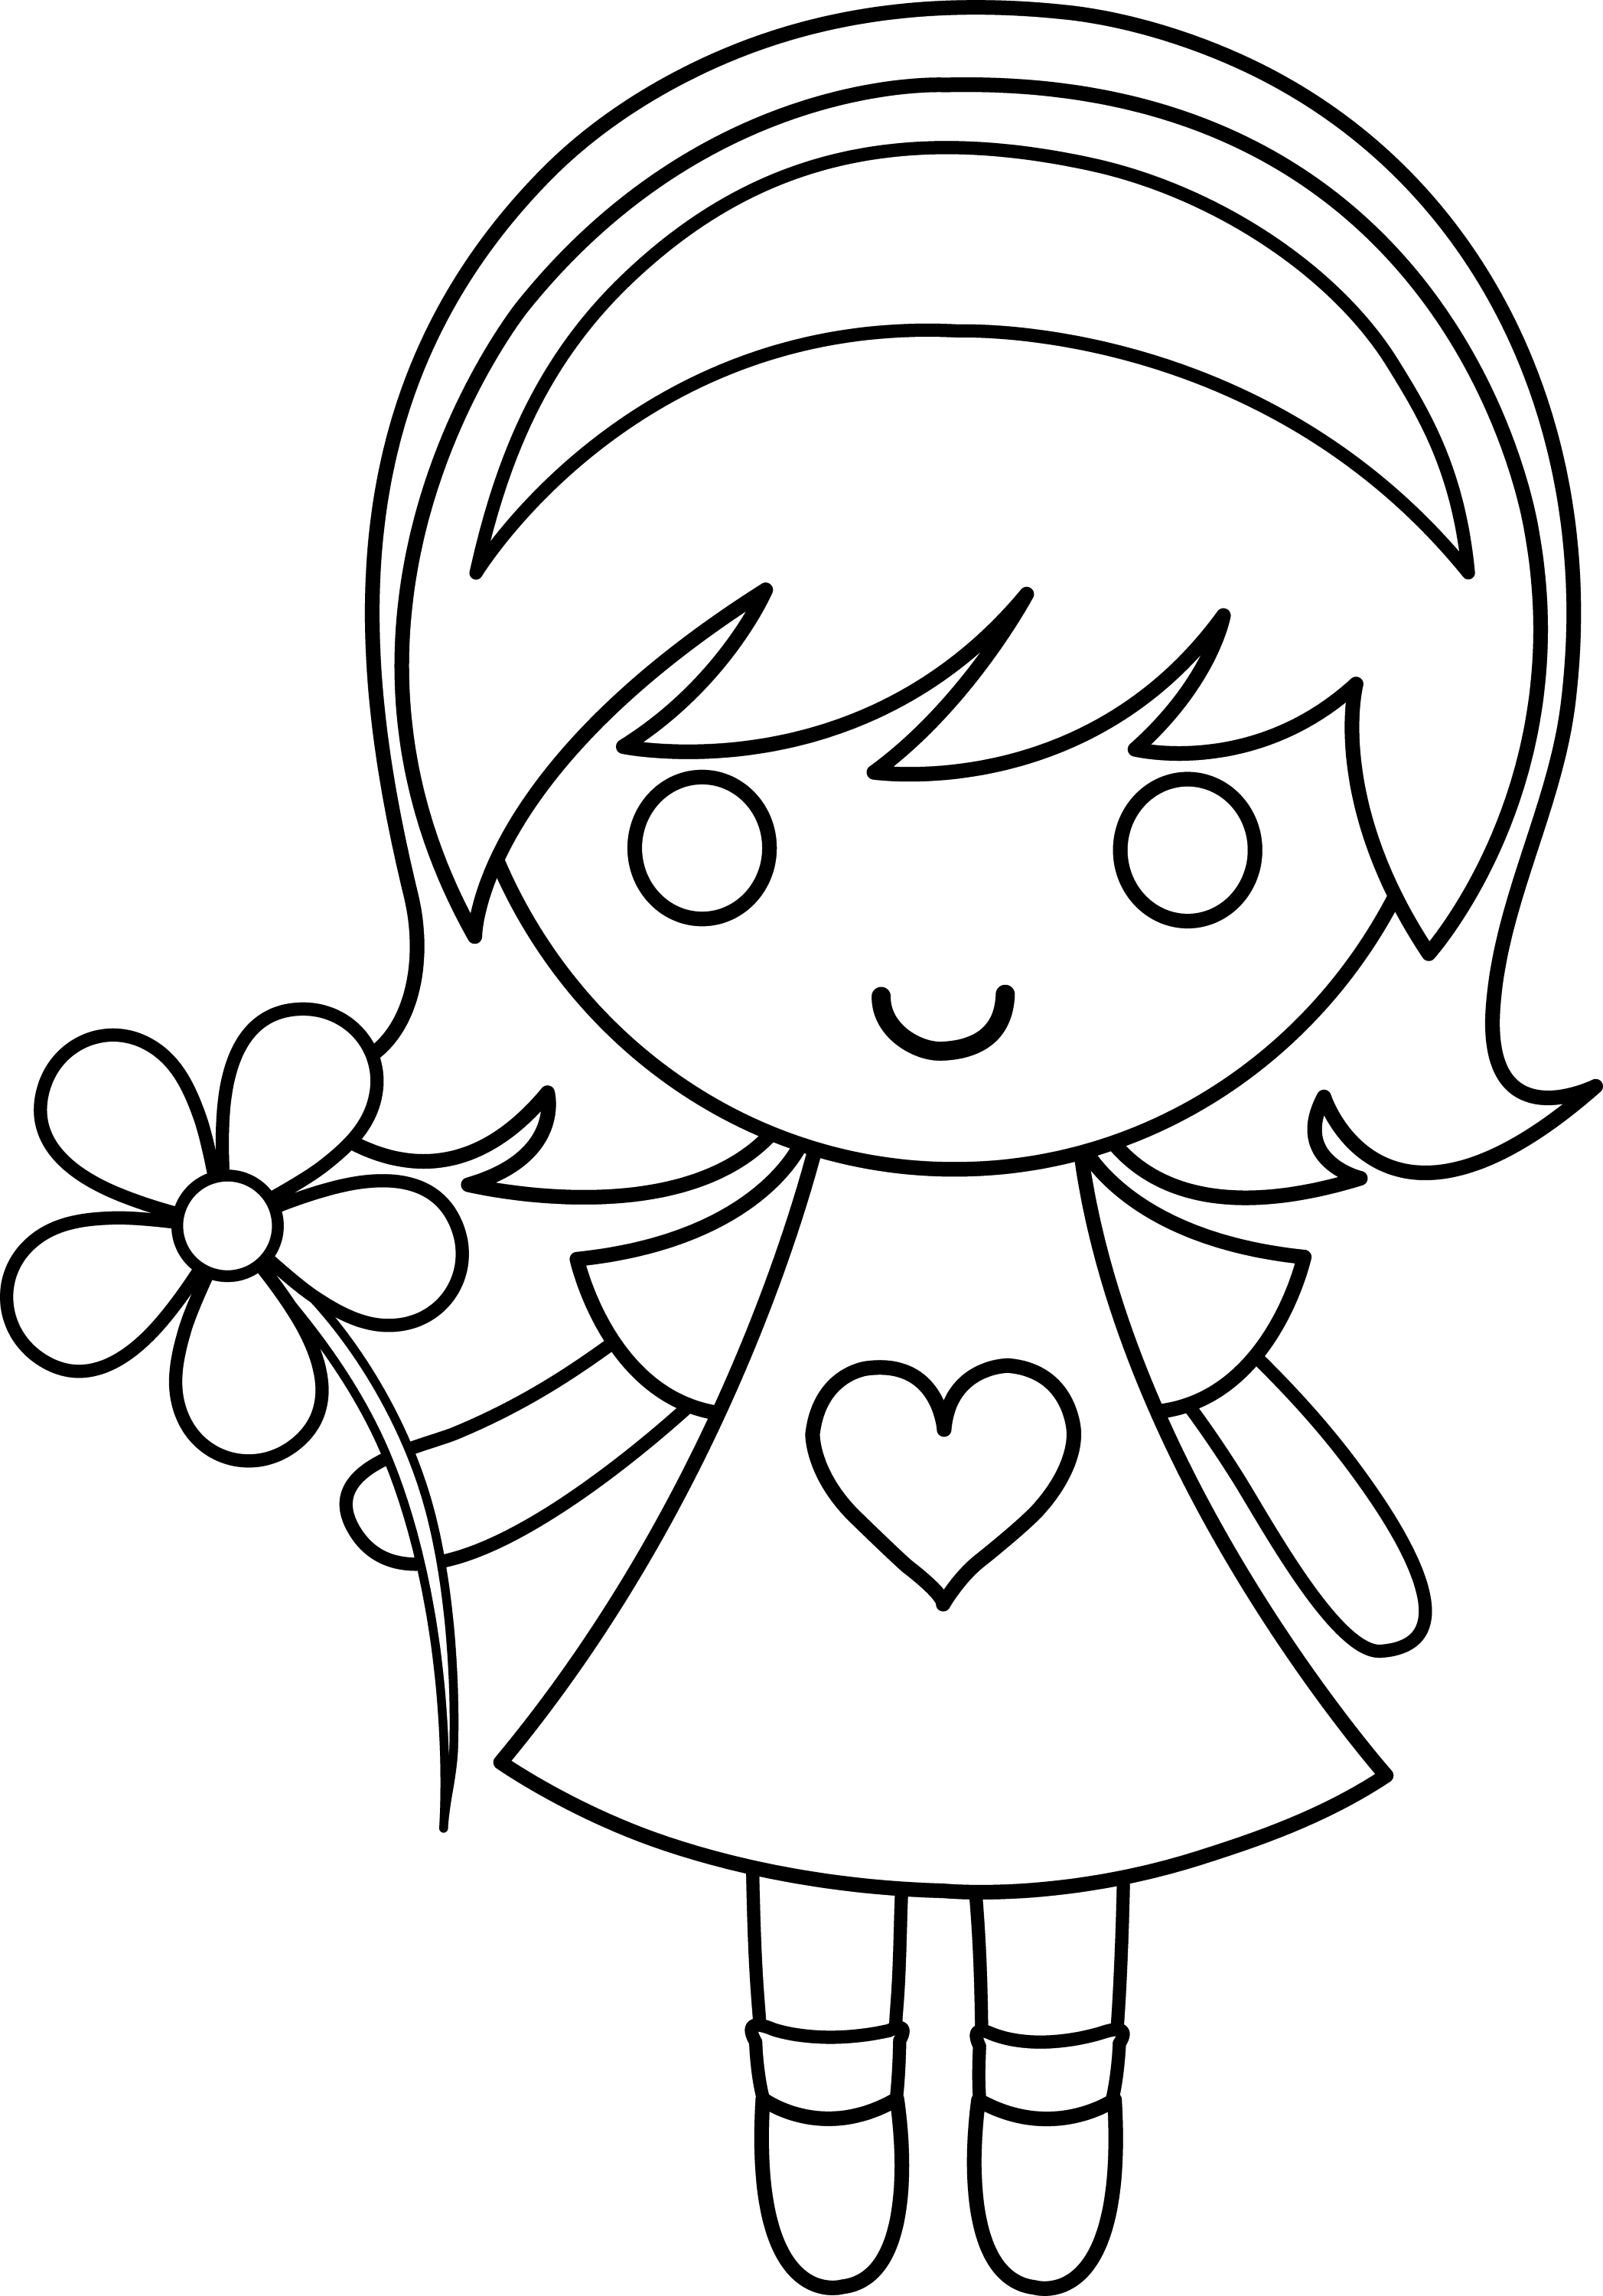 little girl coloring pictures daisy girl colorable line art free clip art girl little coloring pictures